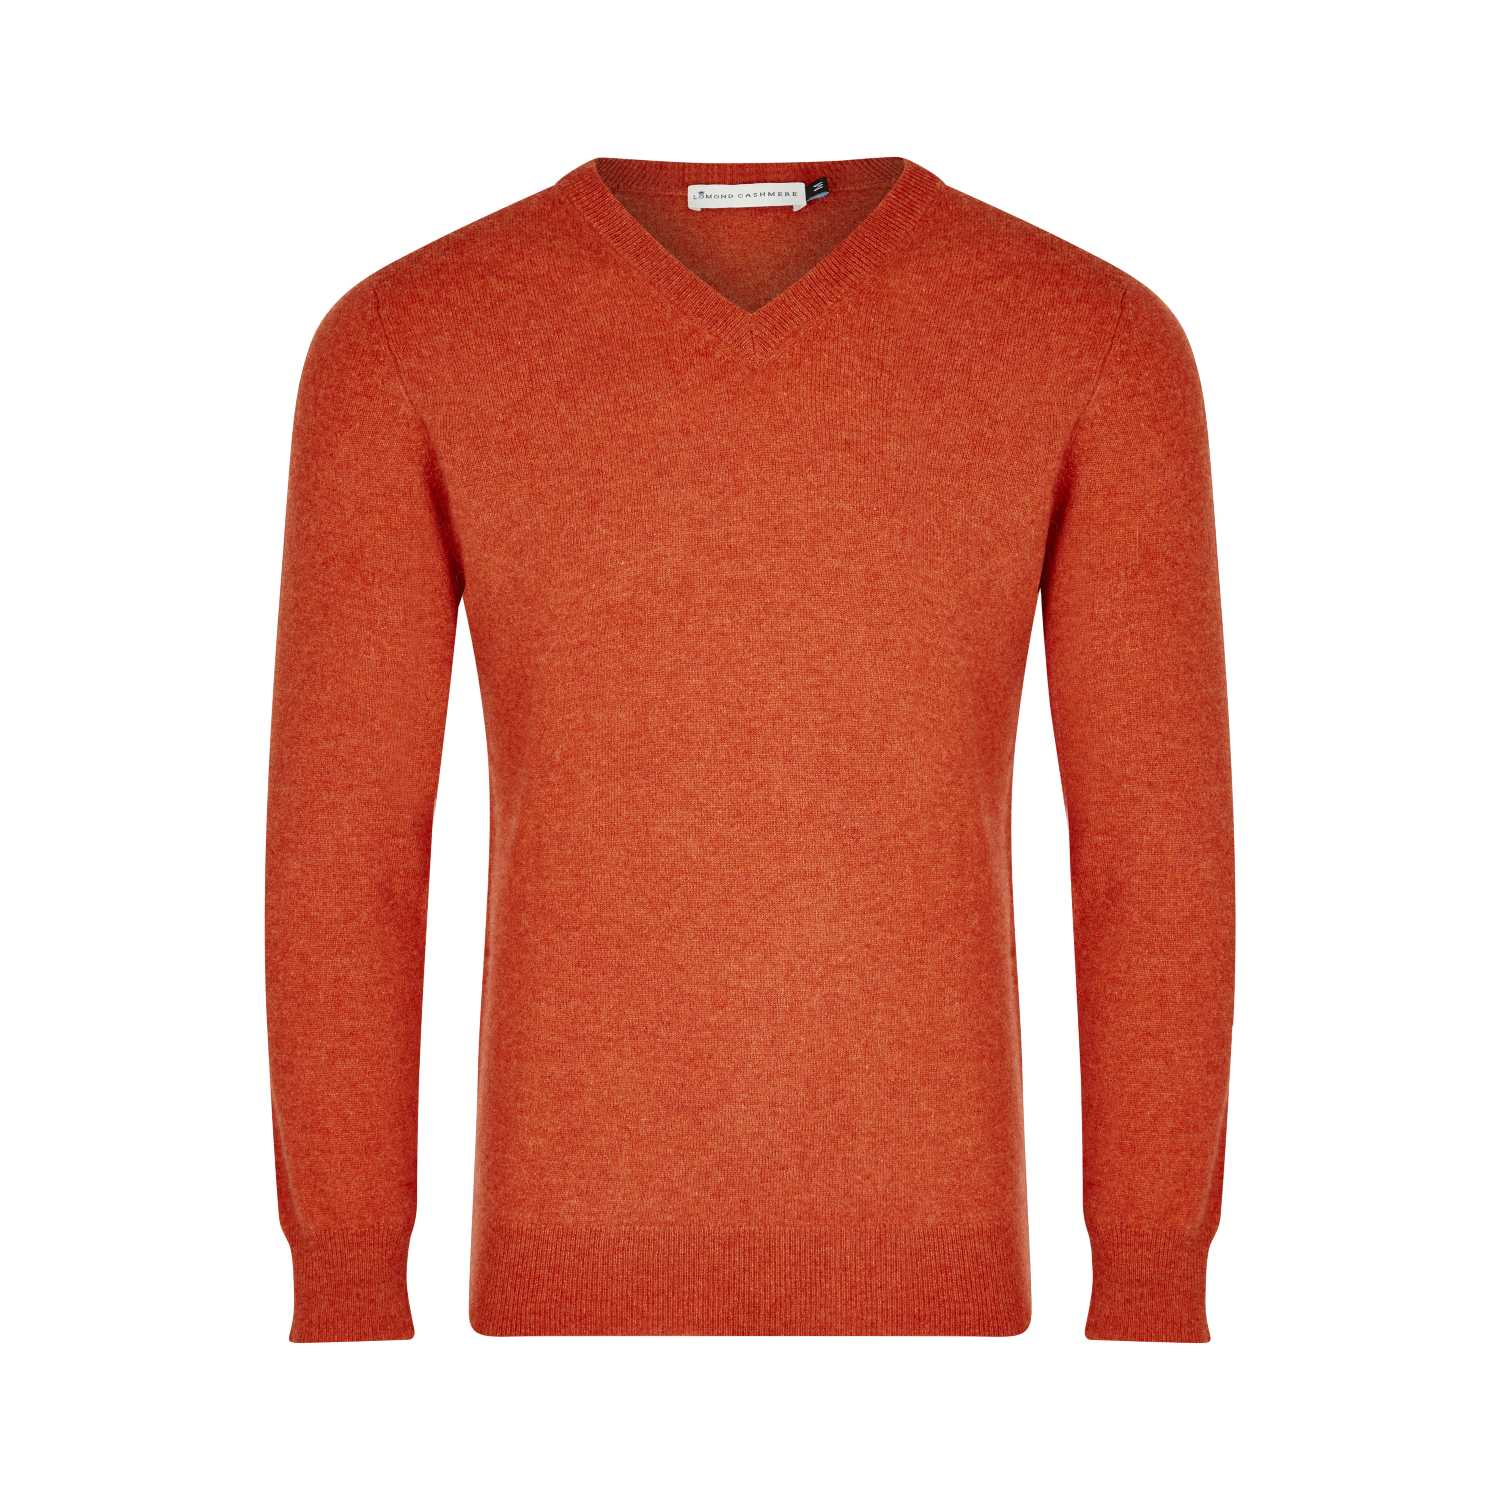 Lomond Cashmere | Mens 2-Ply Cashmere V Neck | Rosewood Pink | Shop now at The Cashmere Choice | London